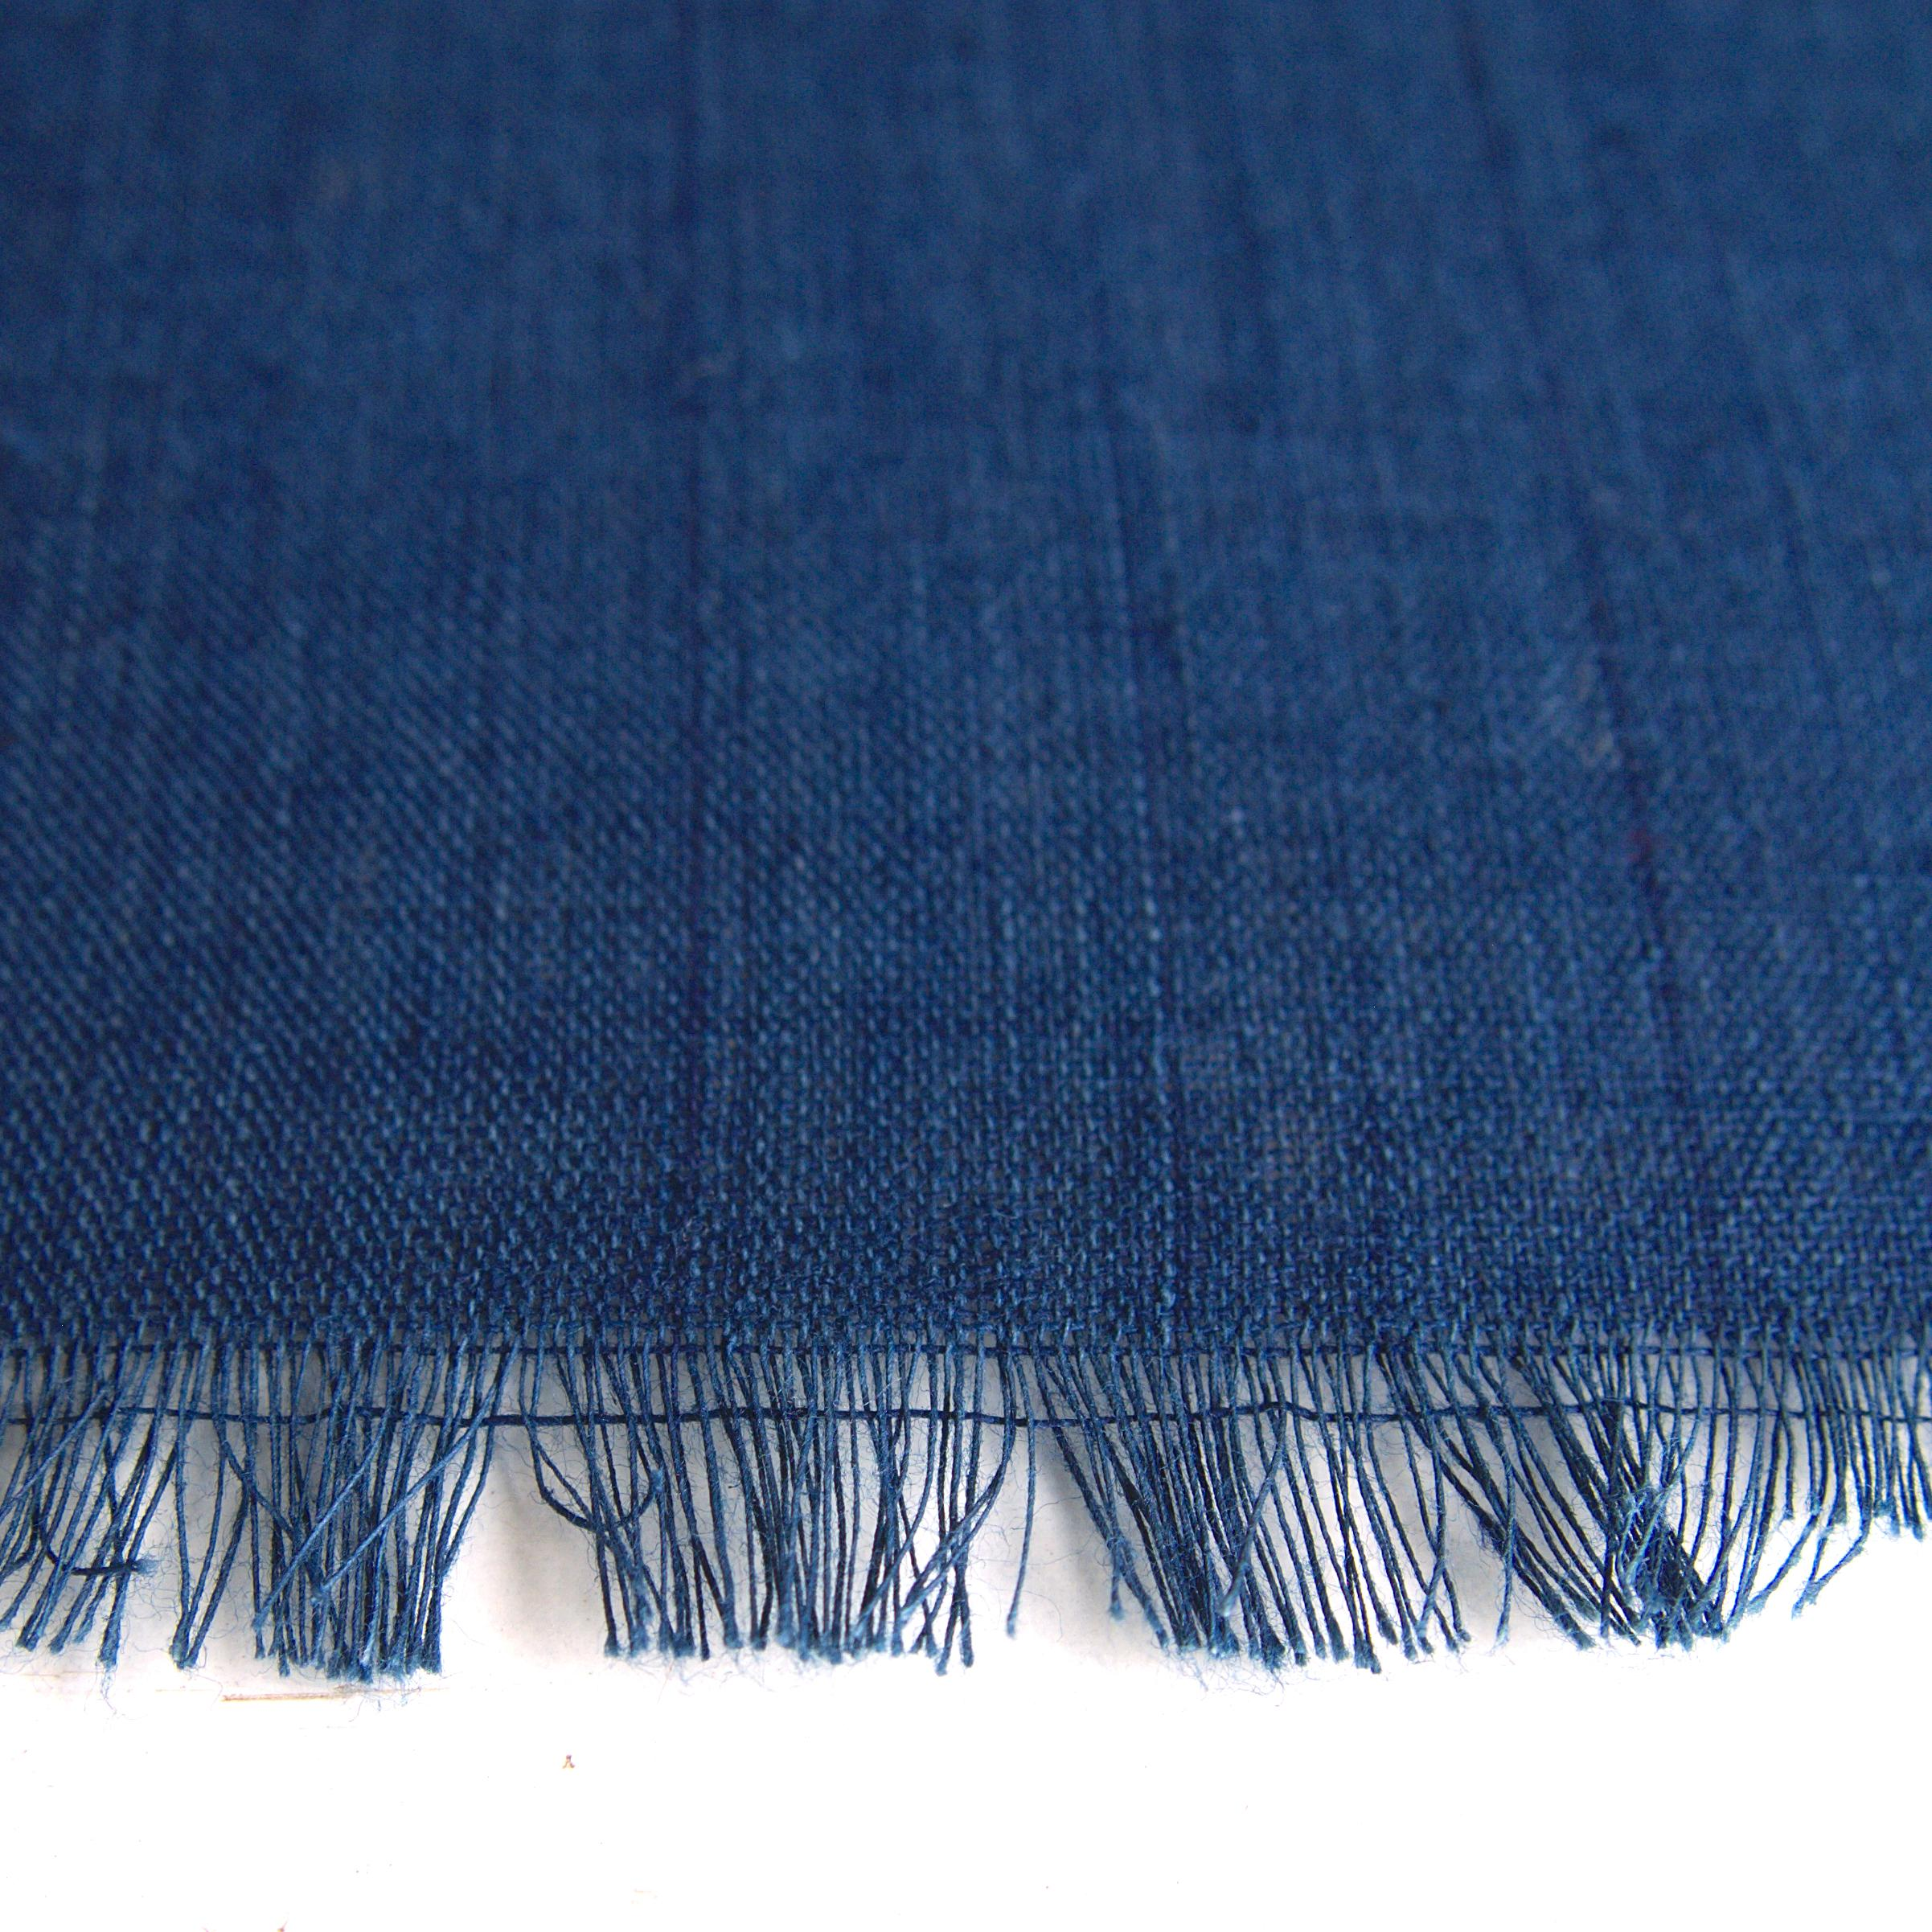 100% Handloom Woven Cotton - Natural Dark Indigo Warp & Warp - Close Up